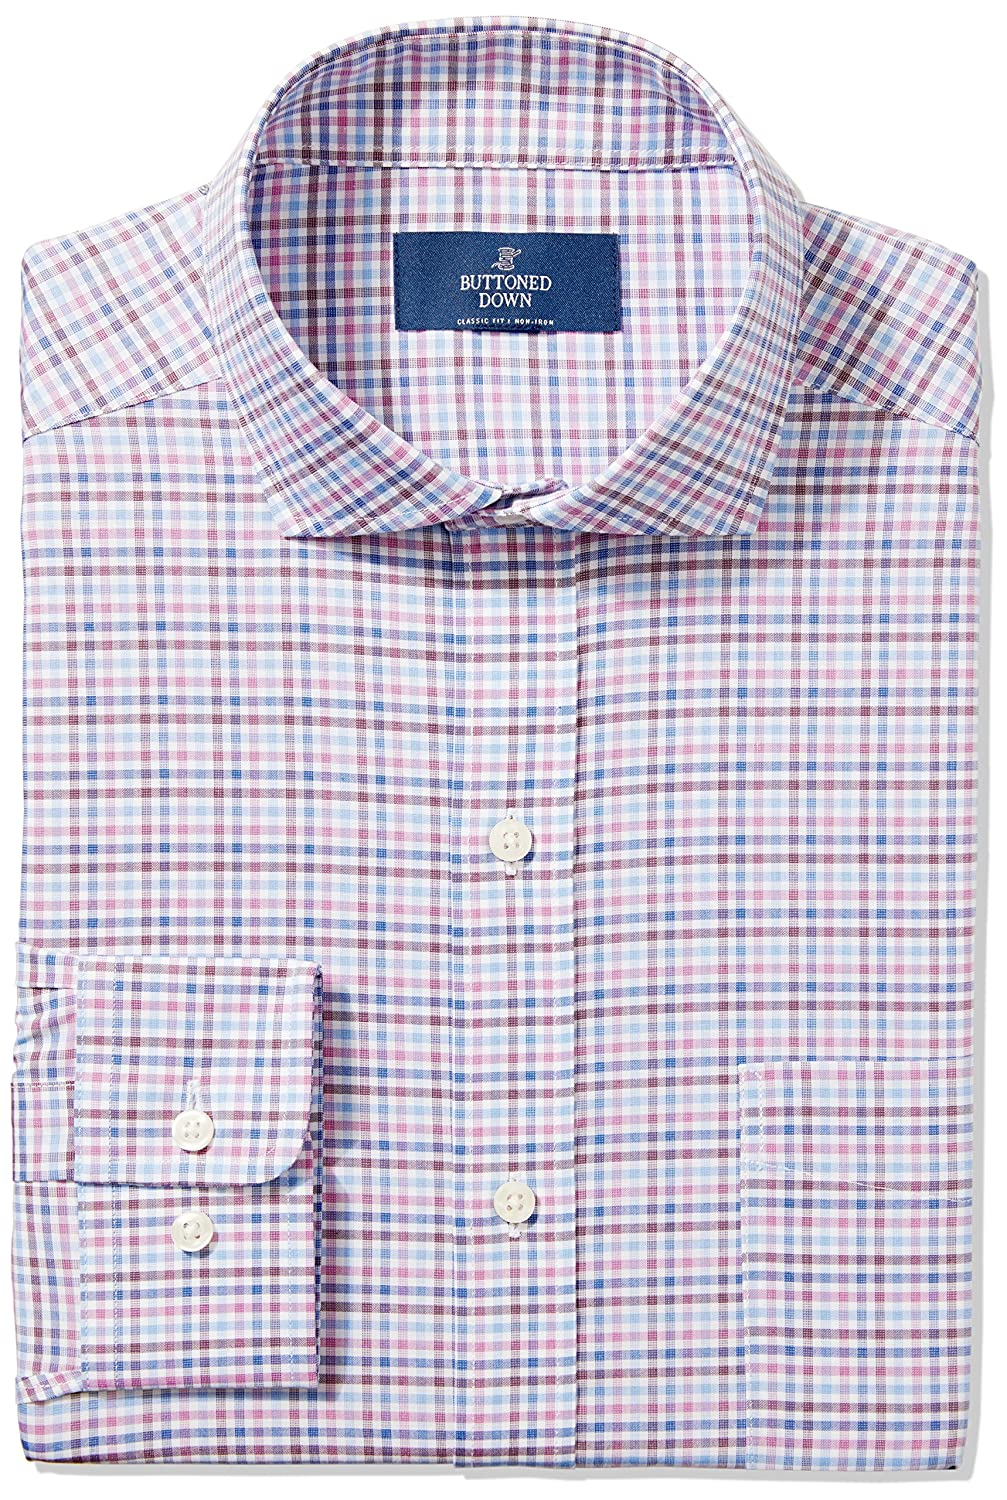 Amazon Buttoned Down Mens Classic Fit Non Iron Dress Shirt